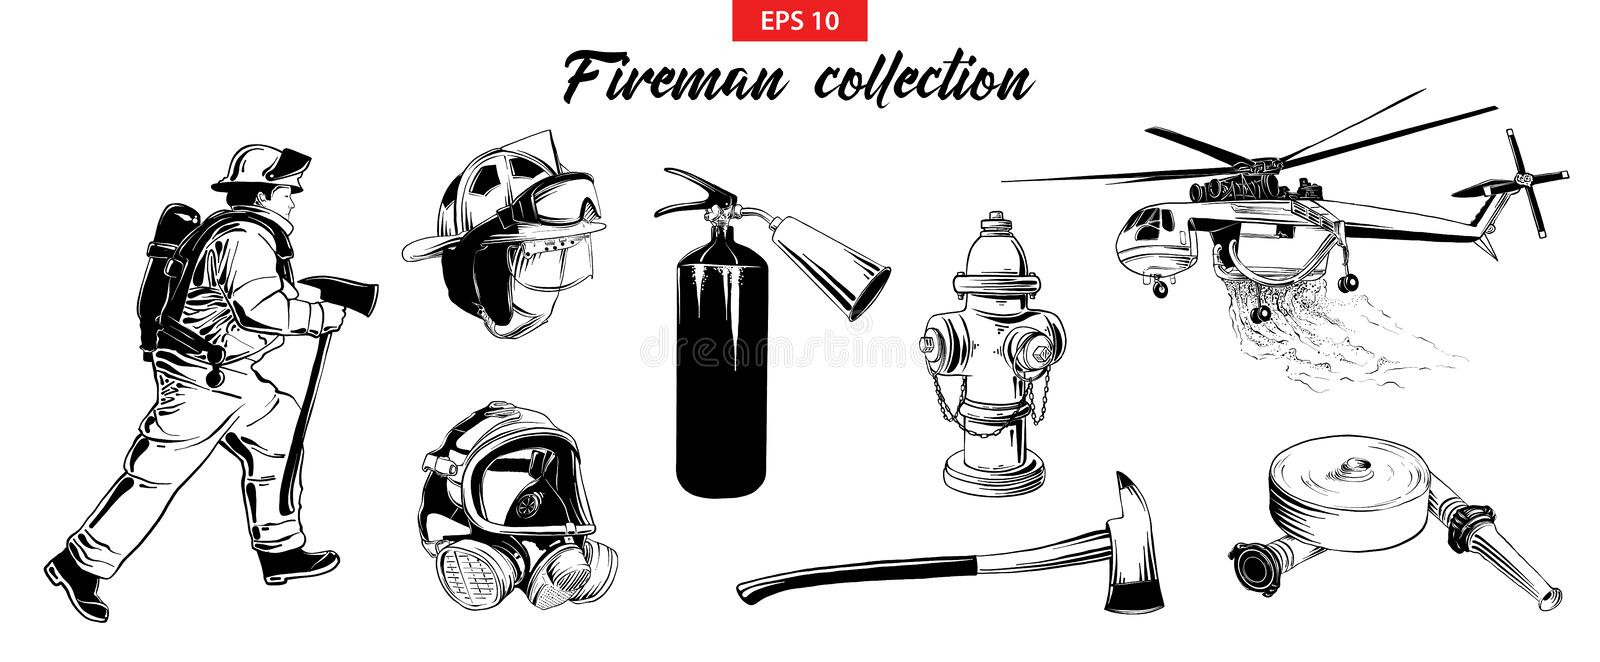 Hand drawn sketch set of firefighter, extinguisher, hydrant, helicopter, gas mask, firehose. Vector engraved style illustrations for posters, logo, emblem and stock illustration